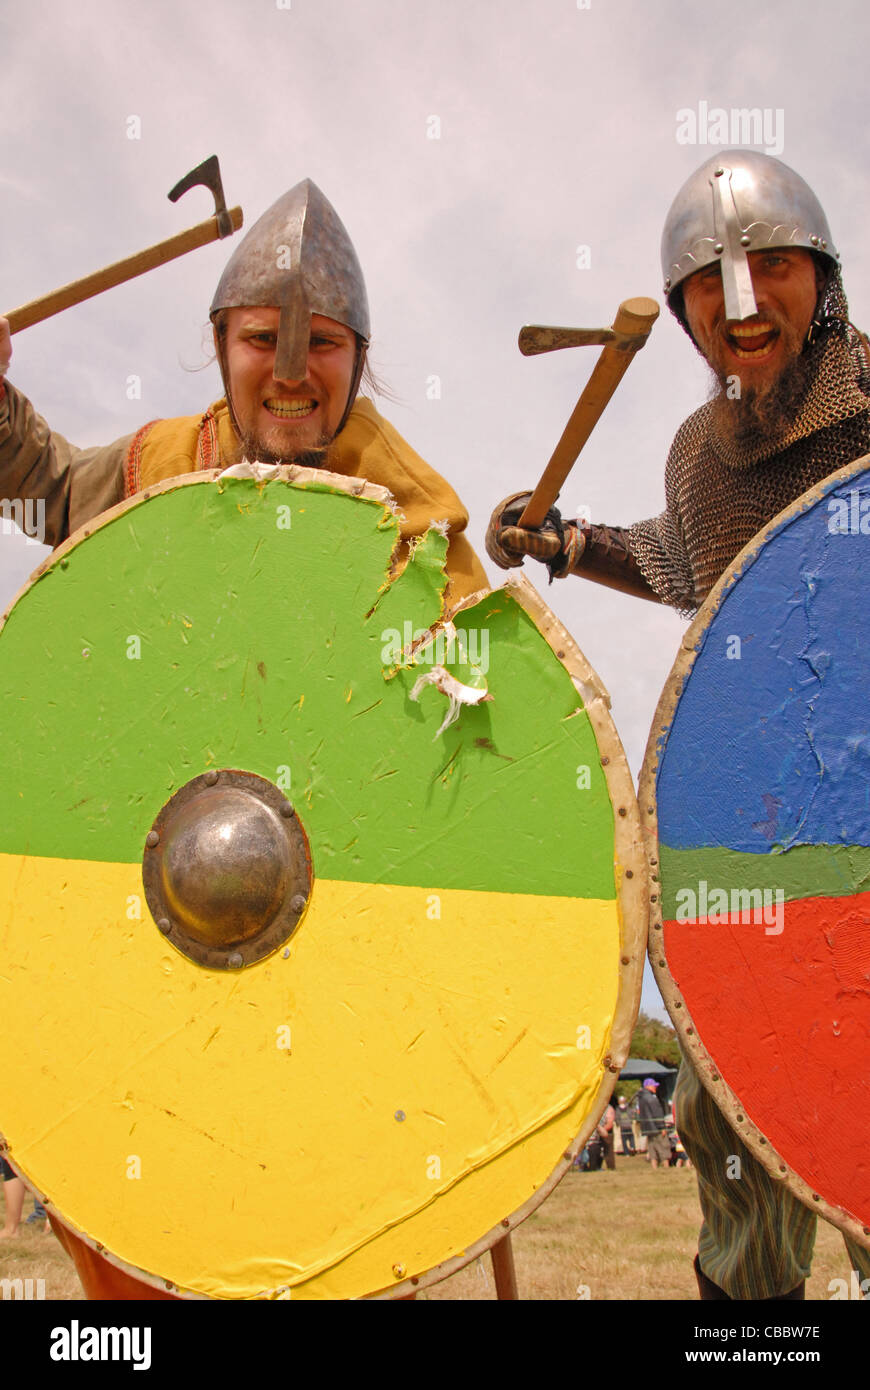 Viking attack was taken on an open weekend the viking festival at amlwch anglesey north wales uk - Stock Image